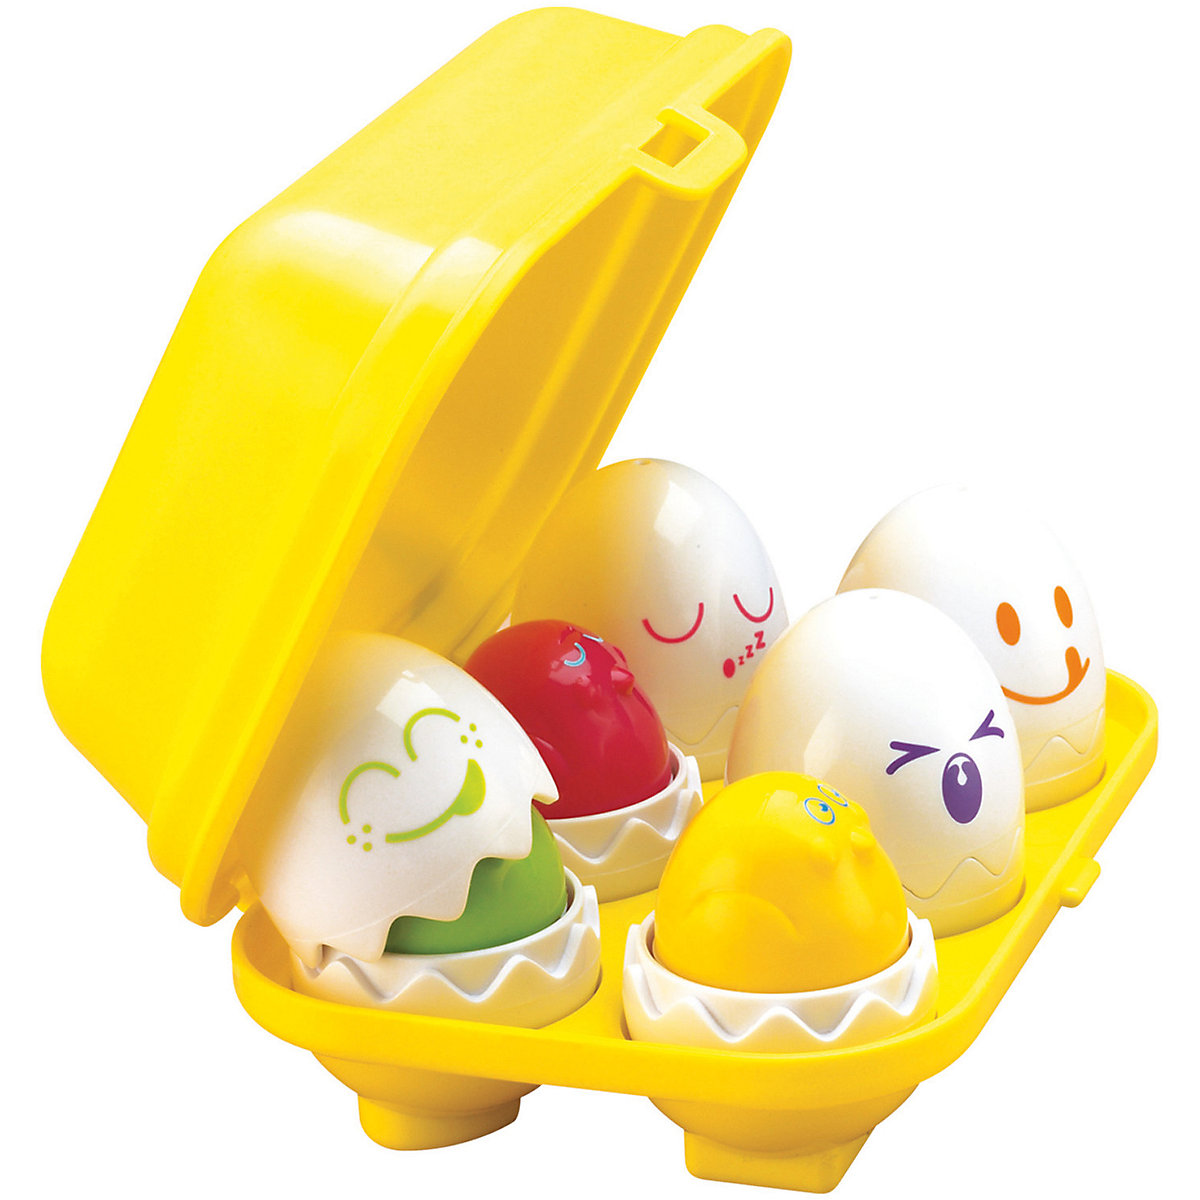 Bath Toy TOMY 1602928 Bathing Bath toys for bathroom on suckers Rubber Duck Doll Kids